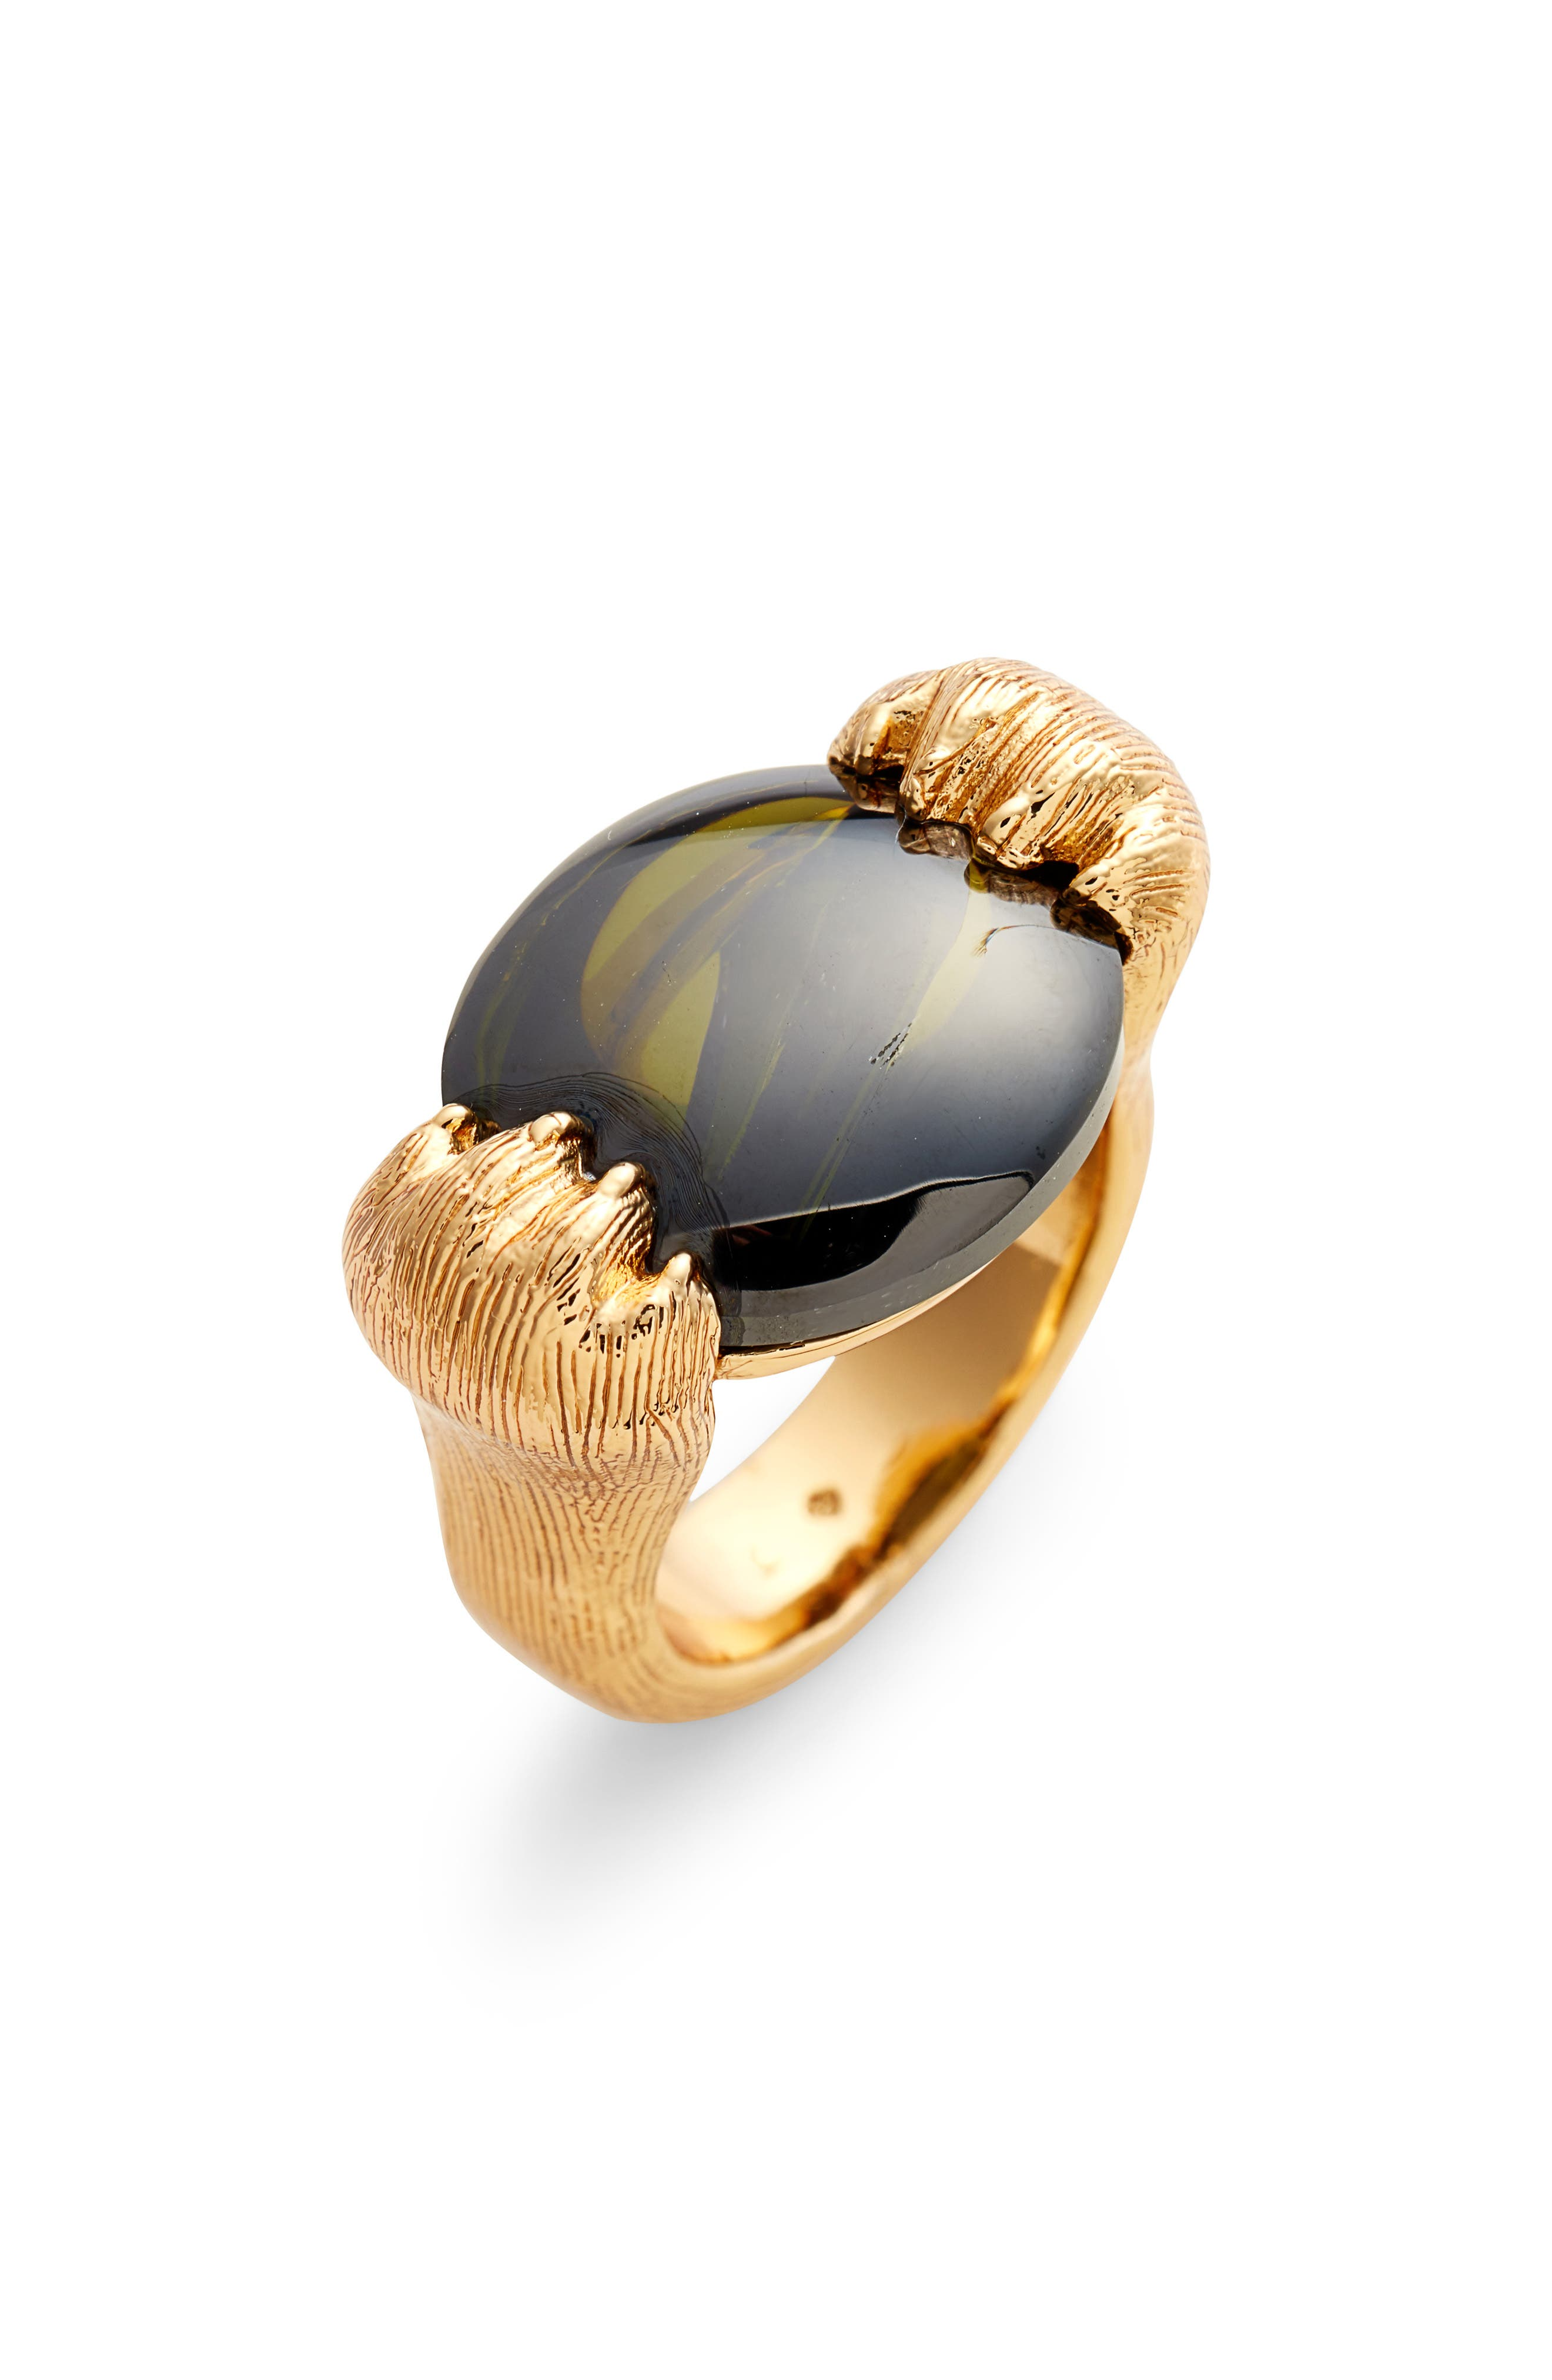 Kate Spade New York Jewelry house cat double paw cocktail ring